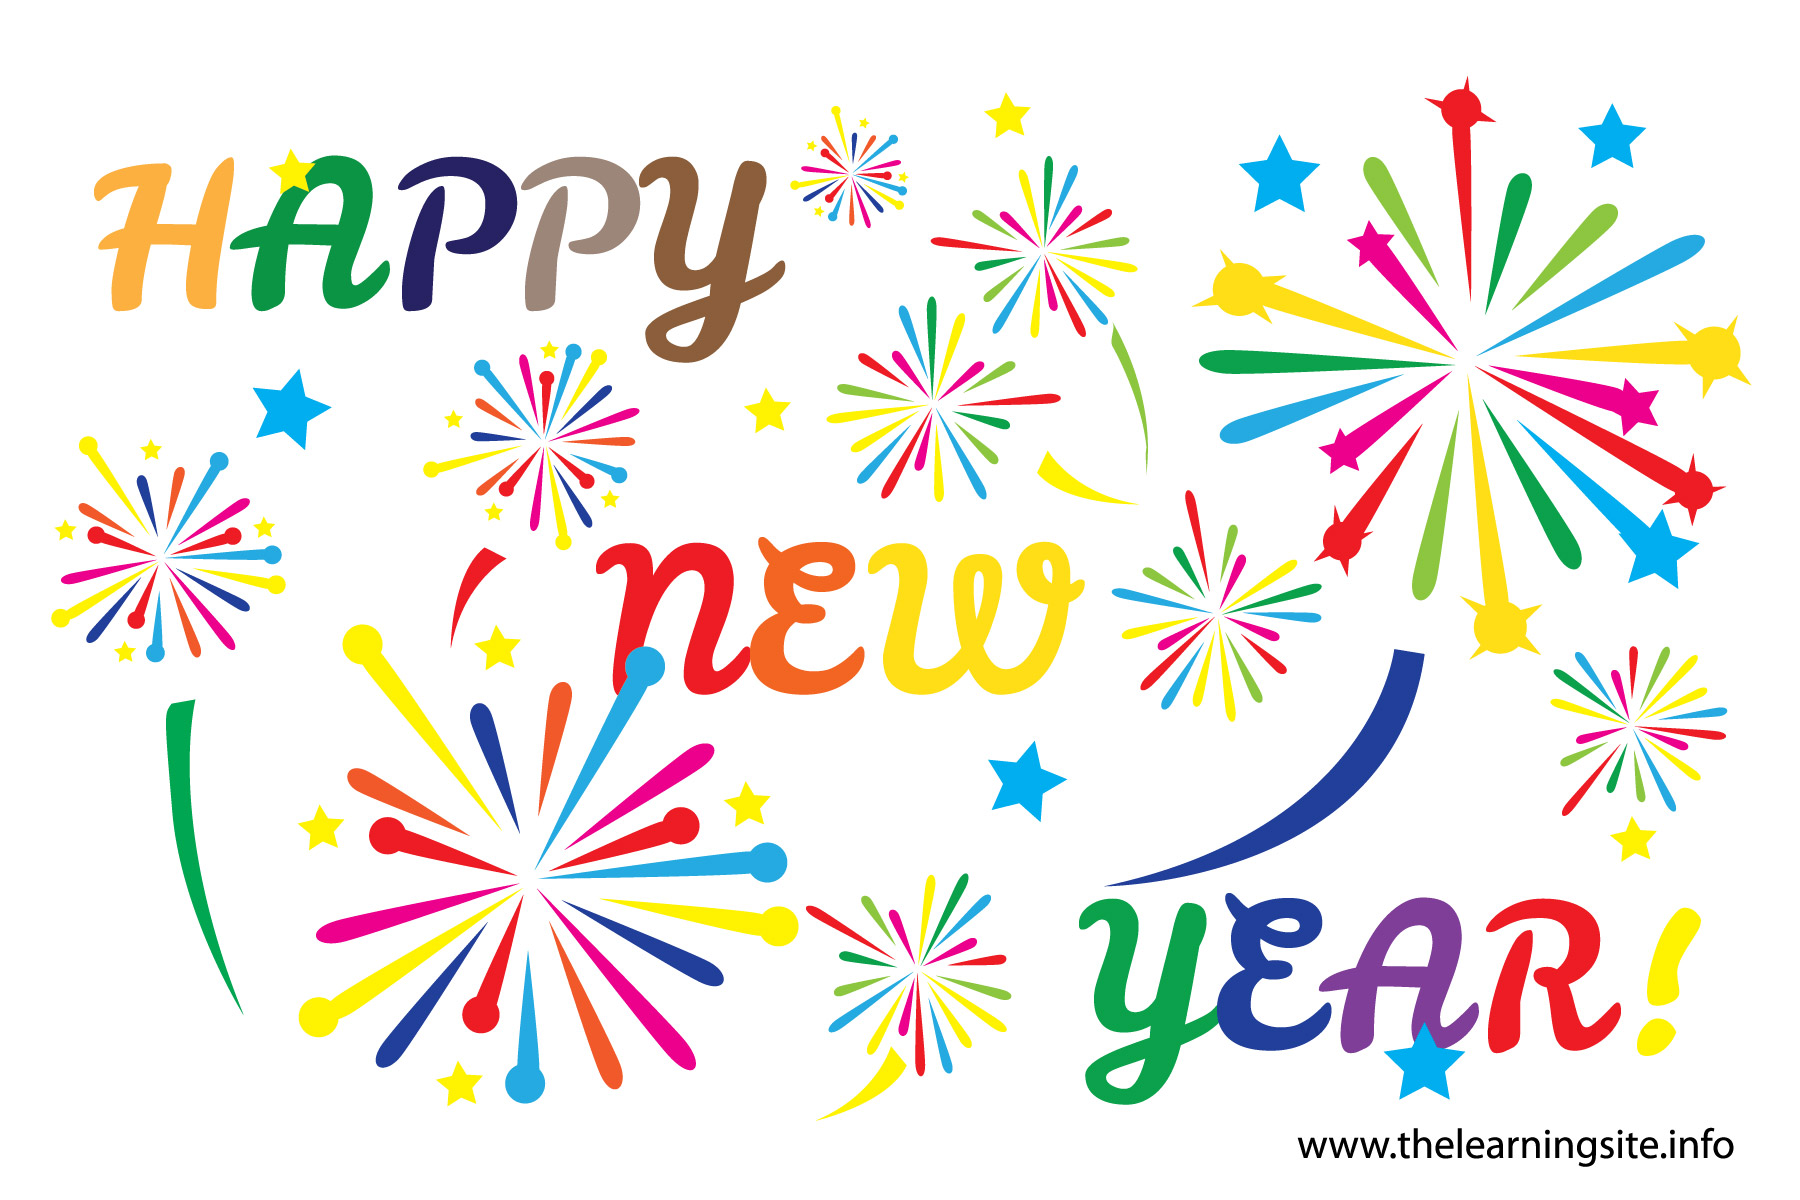 Fireworks clipart happy new year Clipart 5 com Year Happy